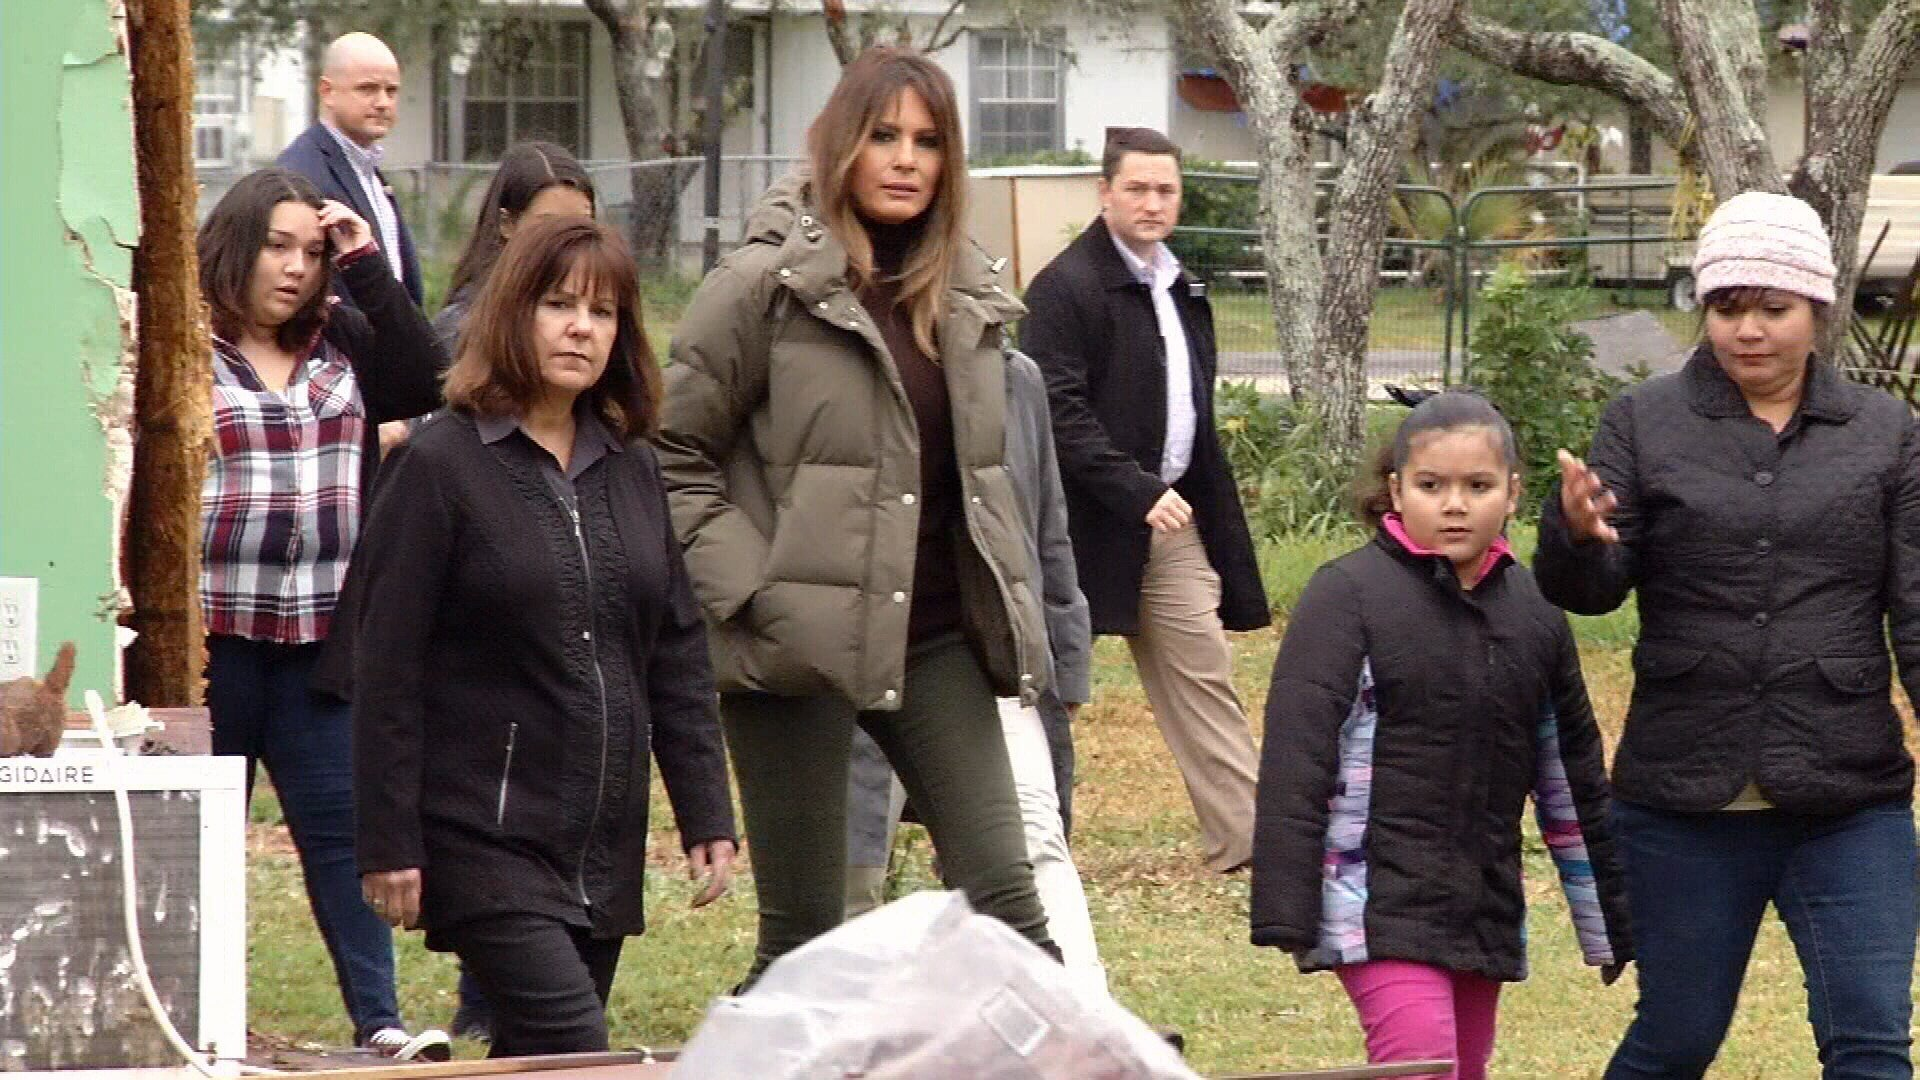 First Lady Melania Trump and Second Lady Karen Spence visited storm victims who have lost their home.